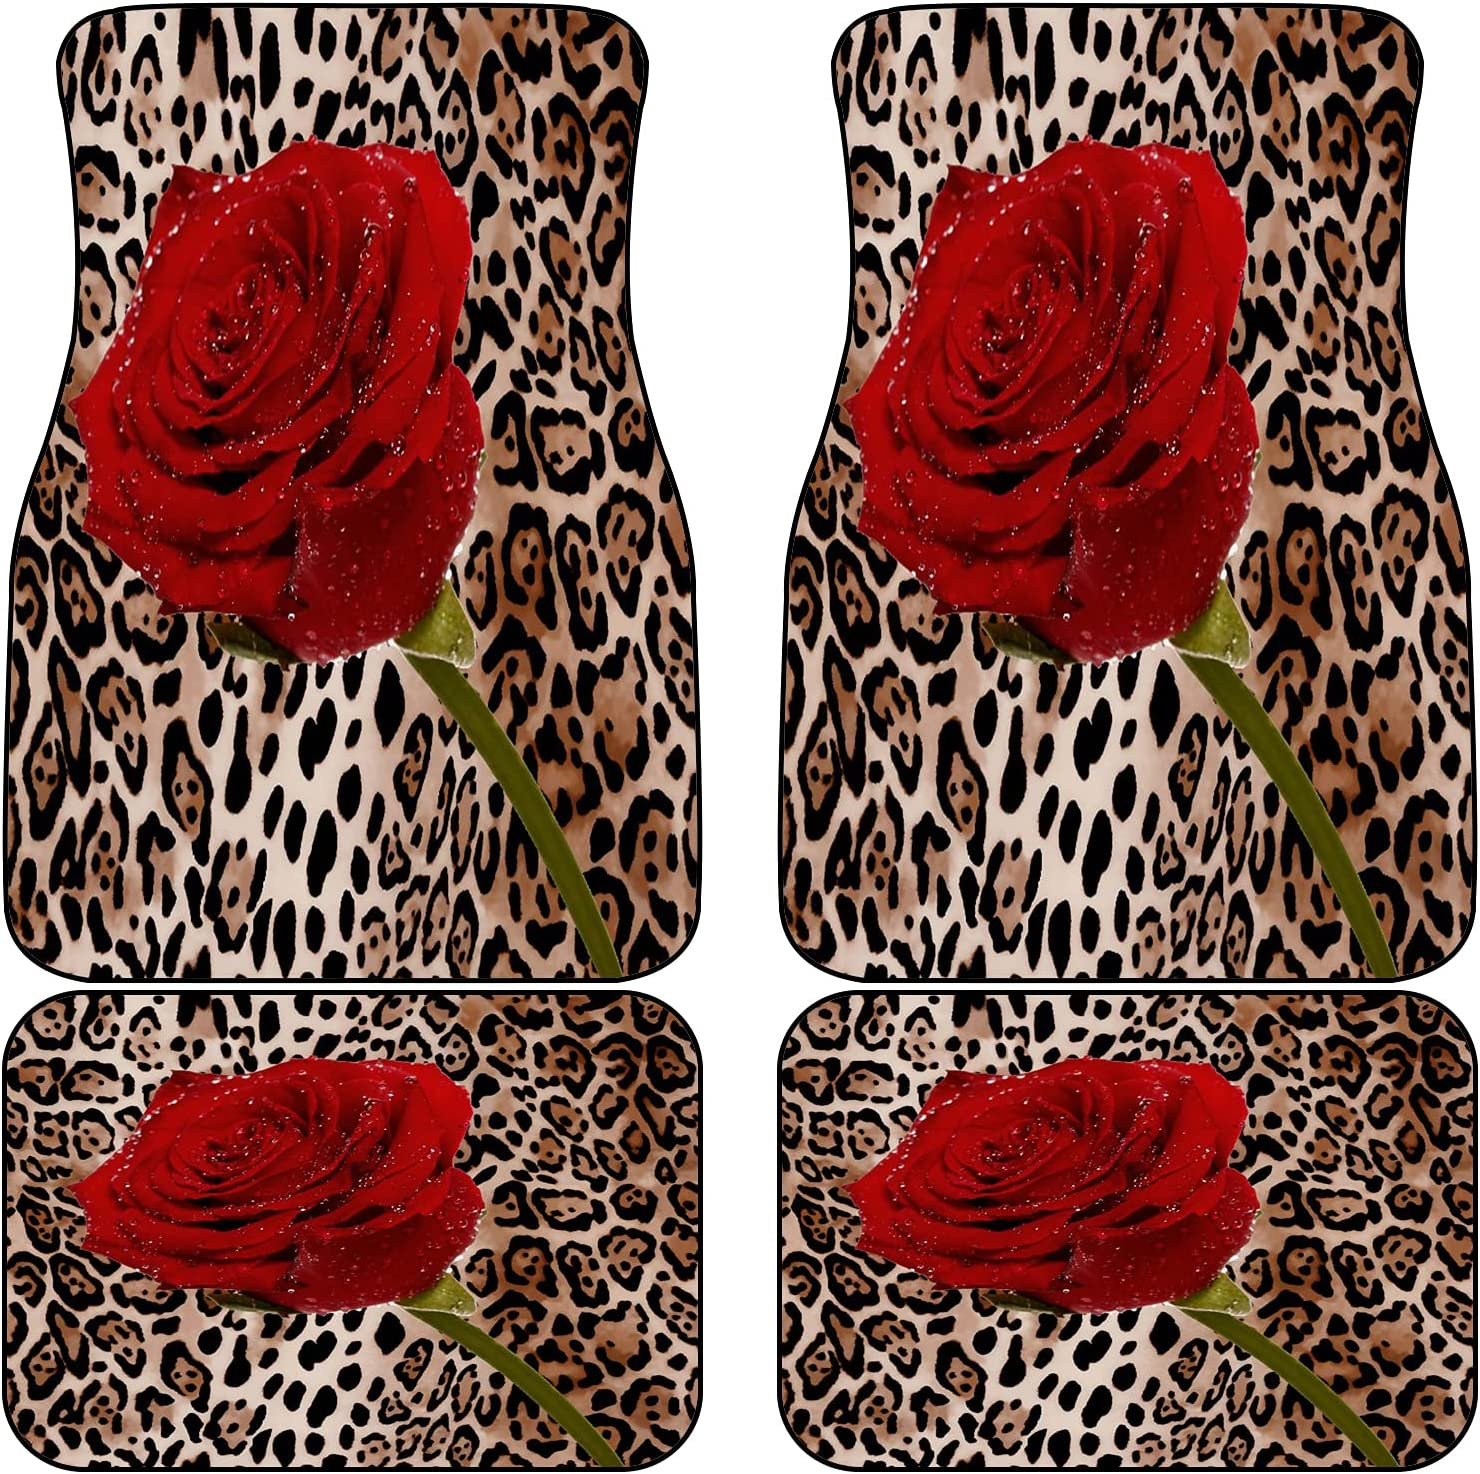 VINISATH Front Rear Car Mats San Jose Mall Set of Rose Colorado Springs Mall Leopard Red 4 Mix Wil